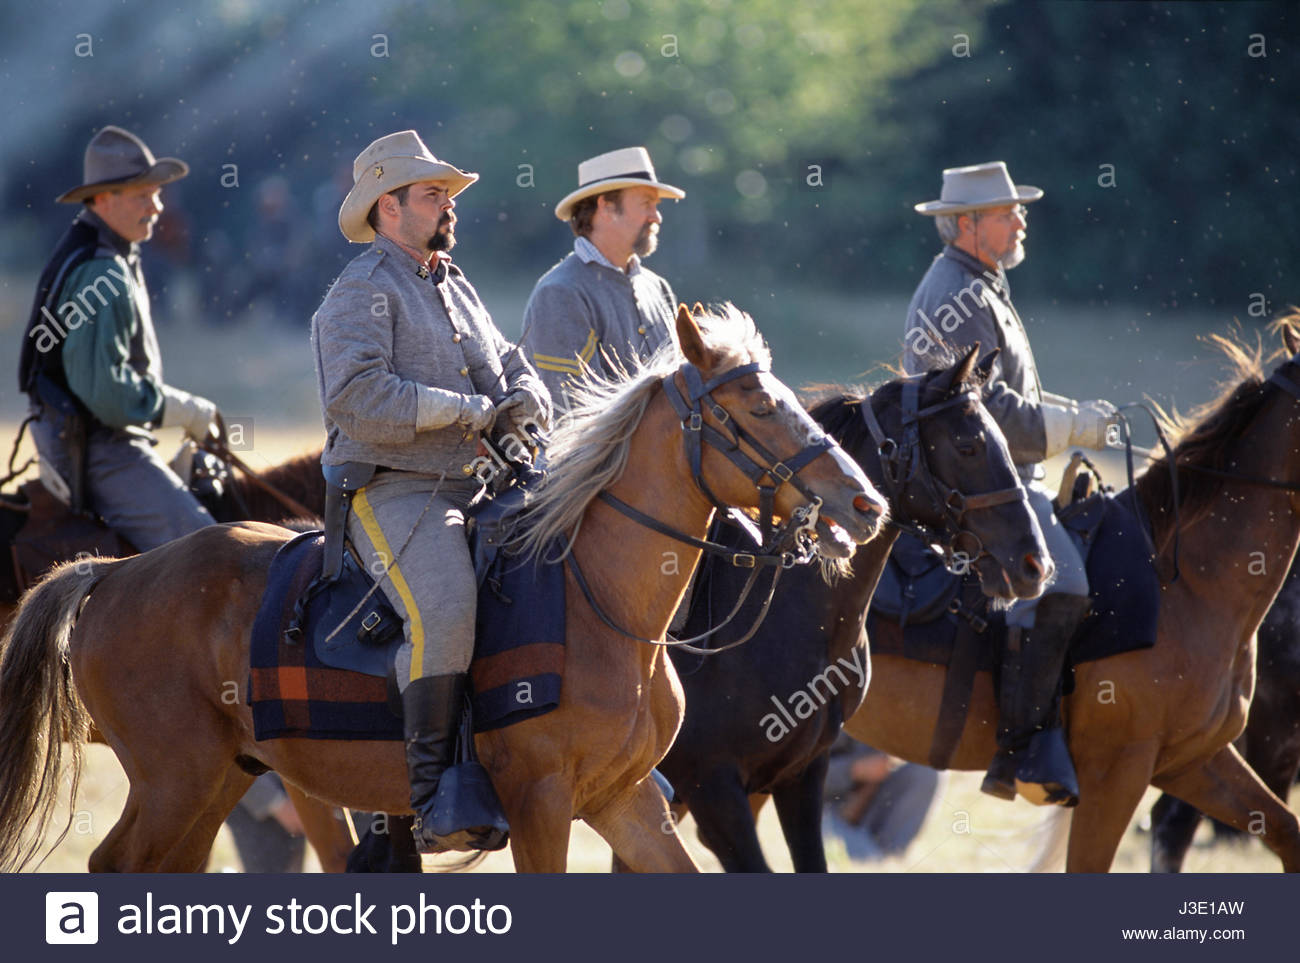 Willamette Mission State Park, Marion County, Oregon, U.S.A. Confederate cavalry troops on horseback. Civil War - Stock Image